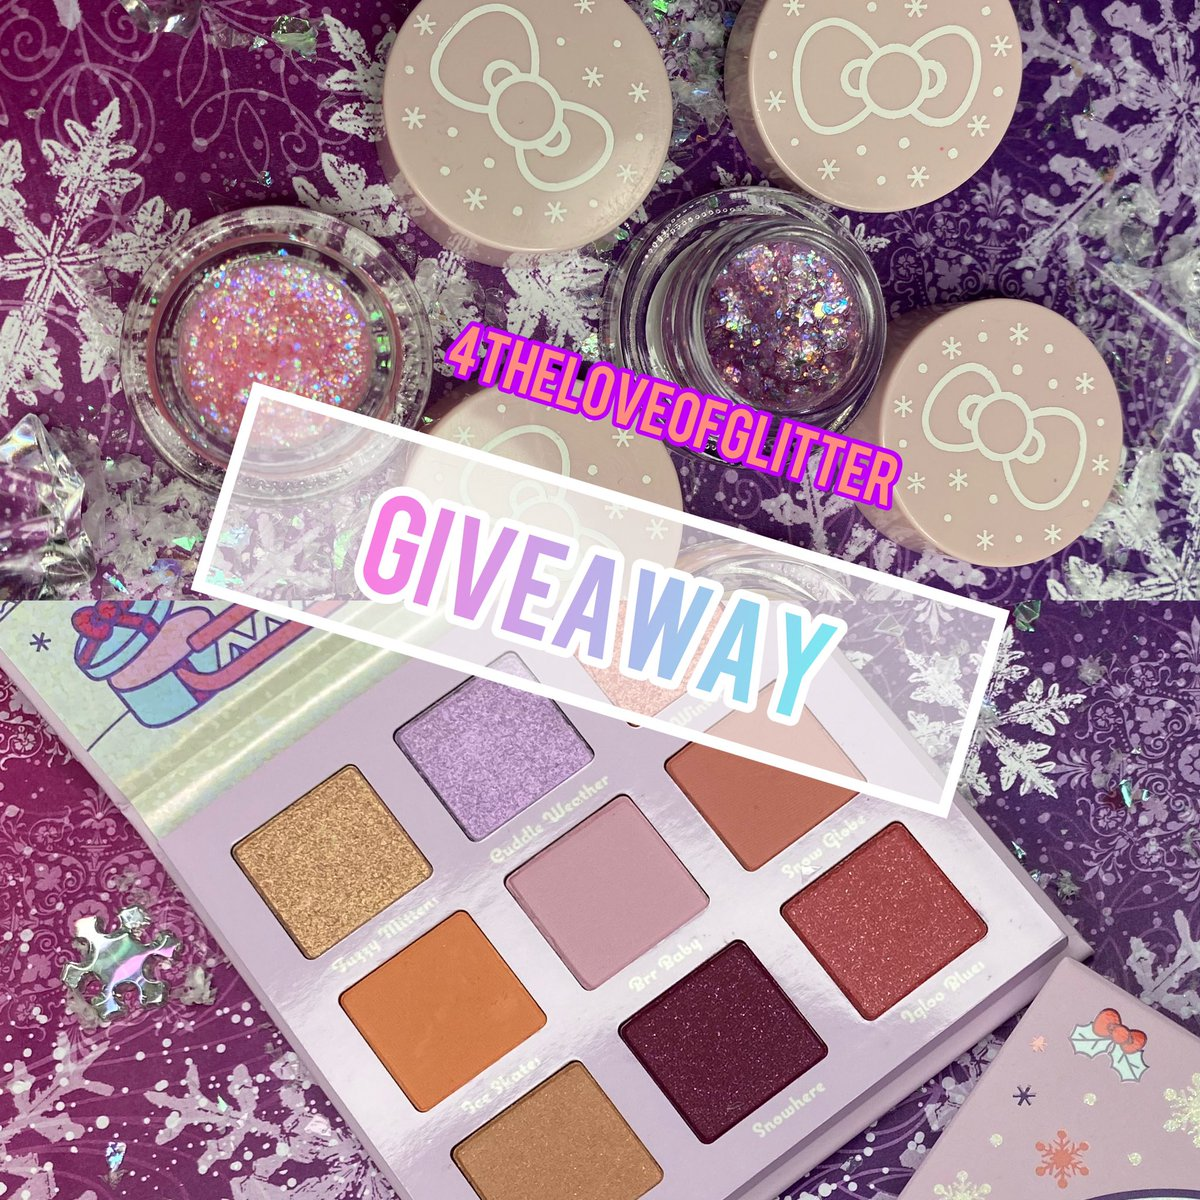 If you live in the US and love #hellokittyxcolourpop collection, you might want to check out my latest video for a giveaway!   #giveaway #giveawayalert #sweepstakes #makeup #colourpop #youtube